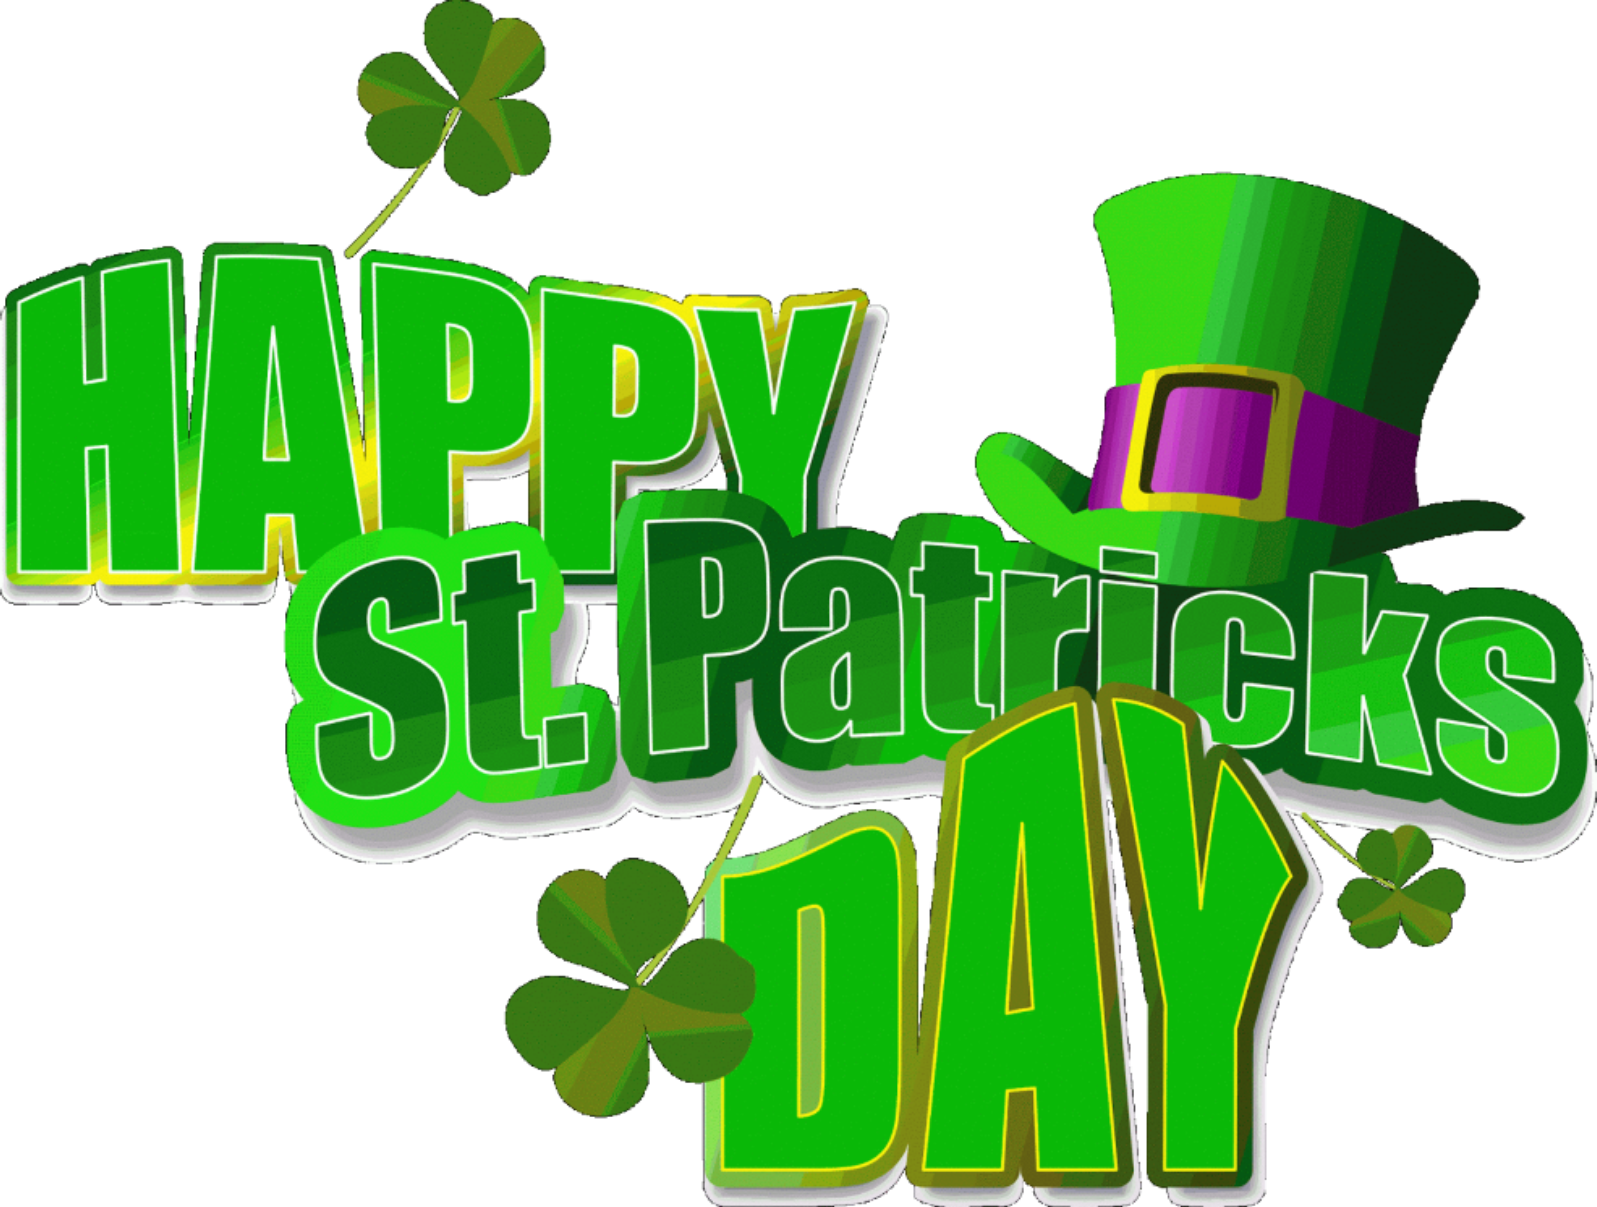 Green Day clipart march News City St Patrick's Day